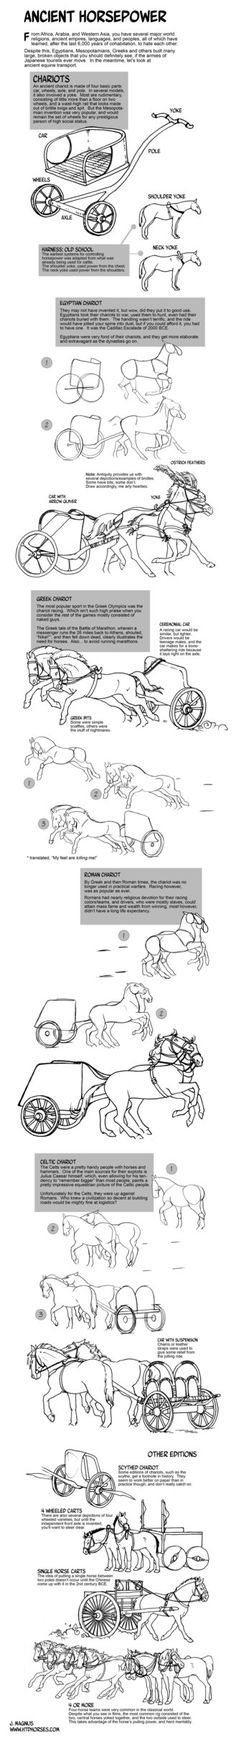 Drawing Ancient Chariots by sketcherjak on DeviantArt